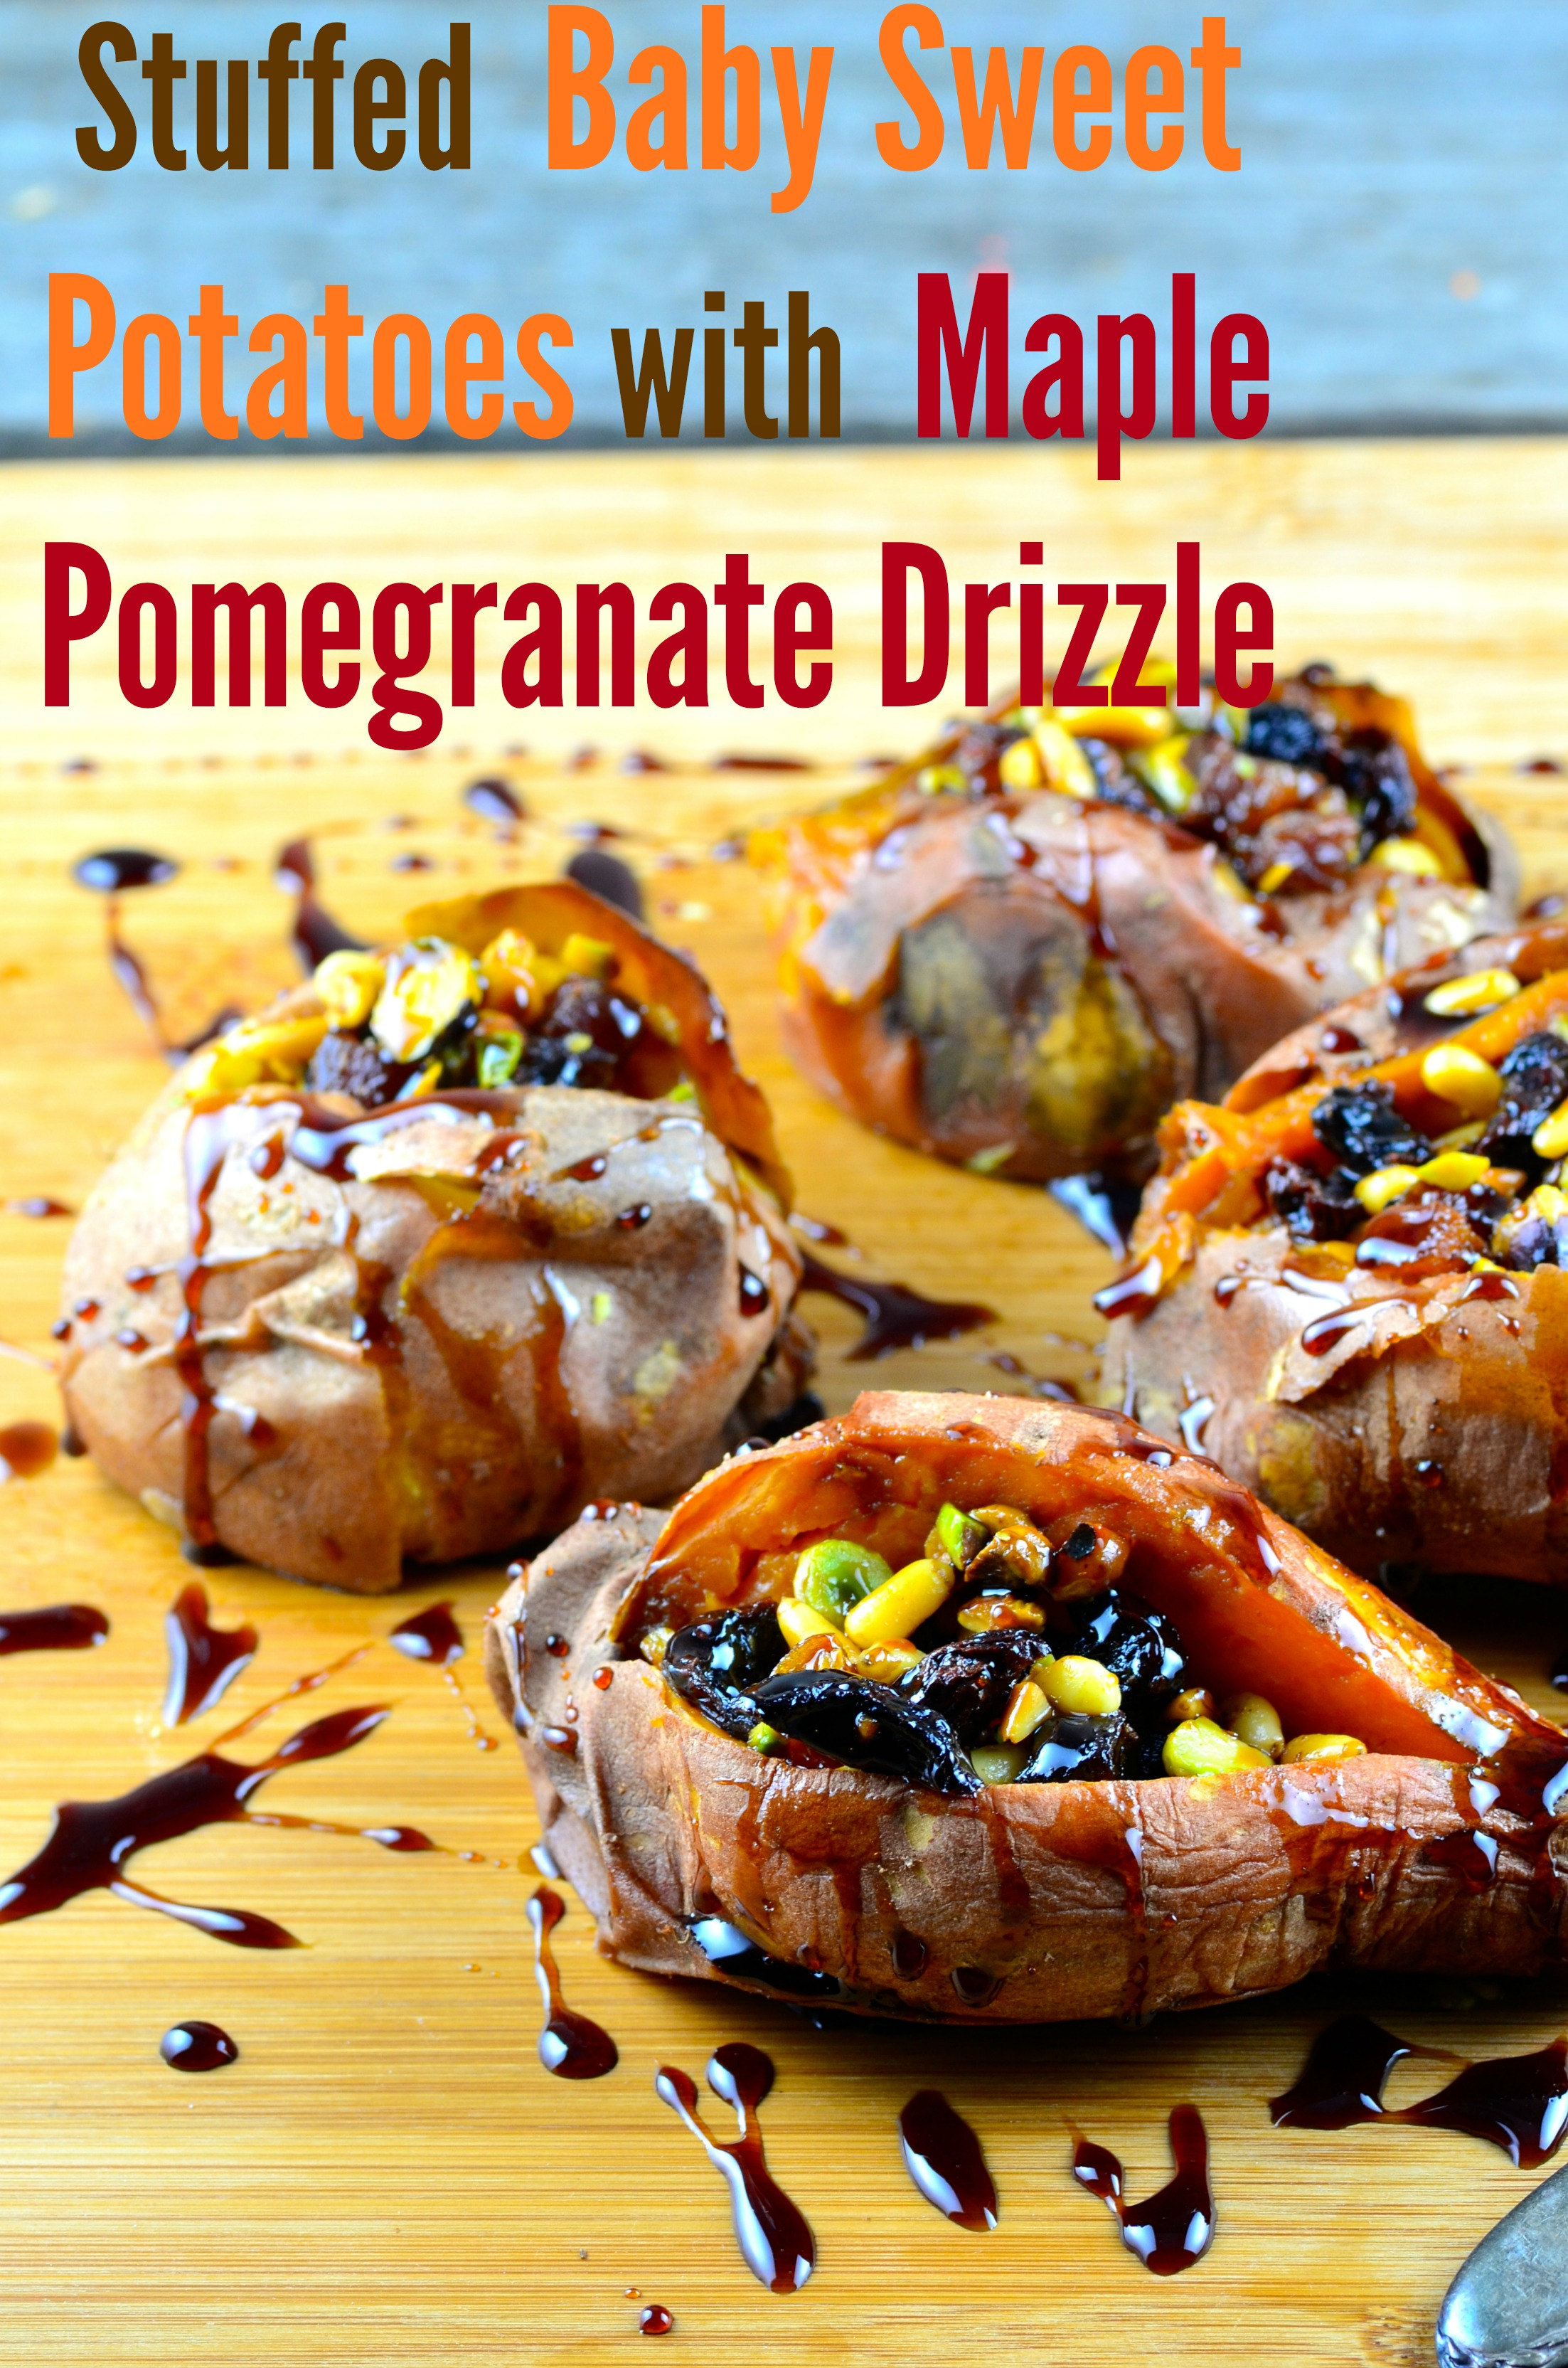 Roasted Sweet potatoes stuffed with dried fruit and drizzled with a maple pomegranate glaze on a wood board